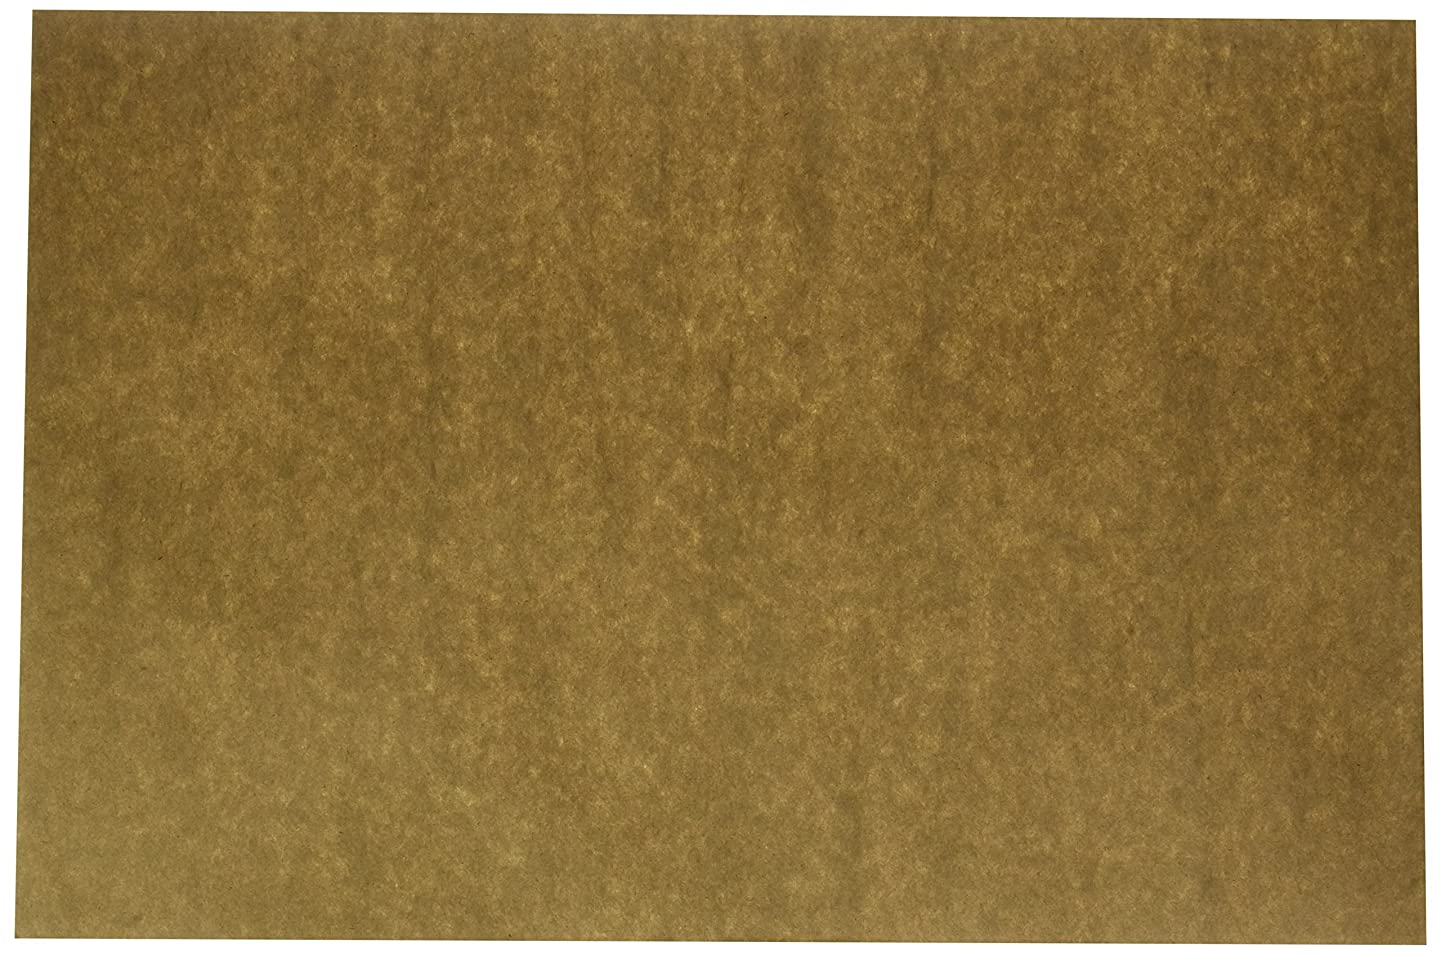 School Smart Kraft Paper Sheets, 60 lb, 12 x 18 Inches, Brown, Pack of 100 ylteuiyfqldl